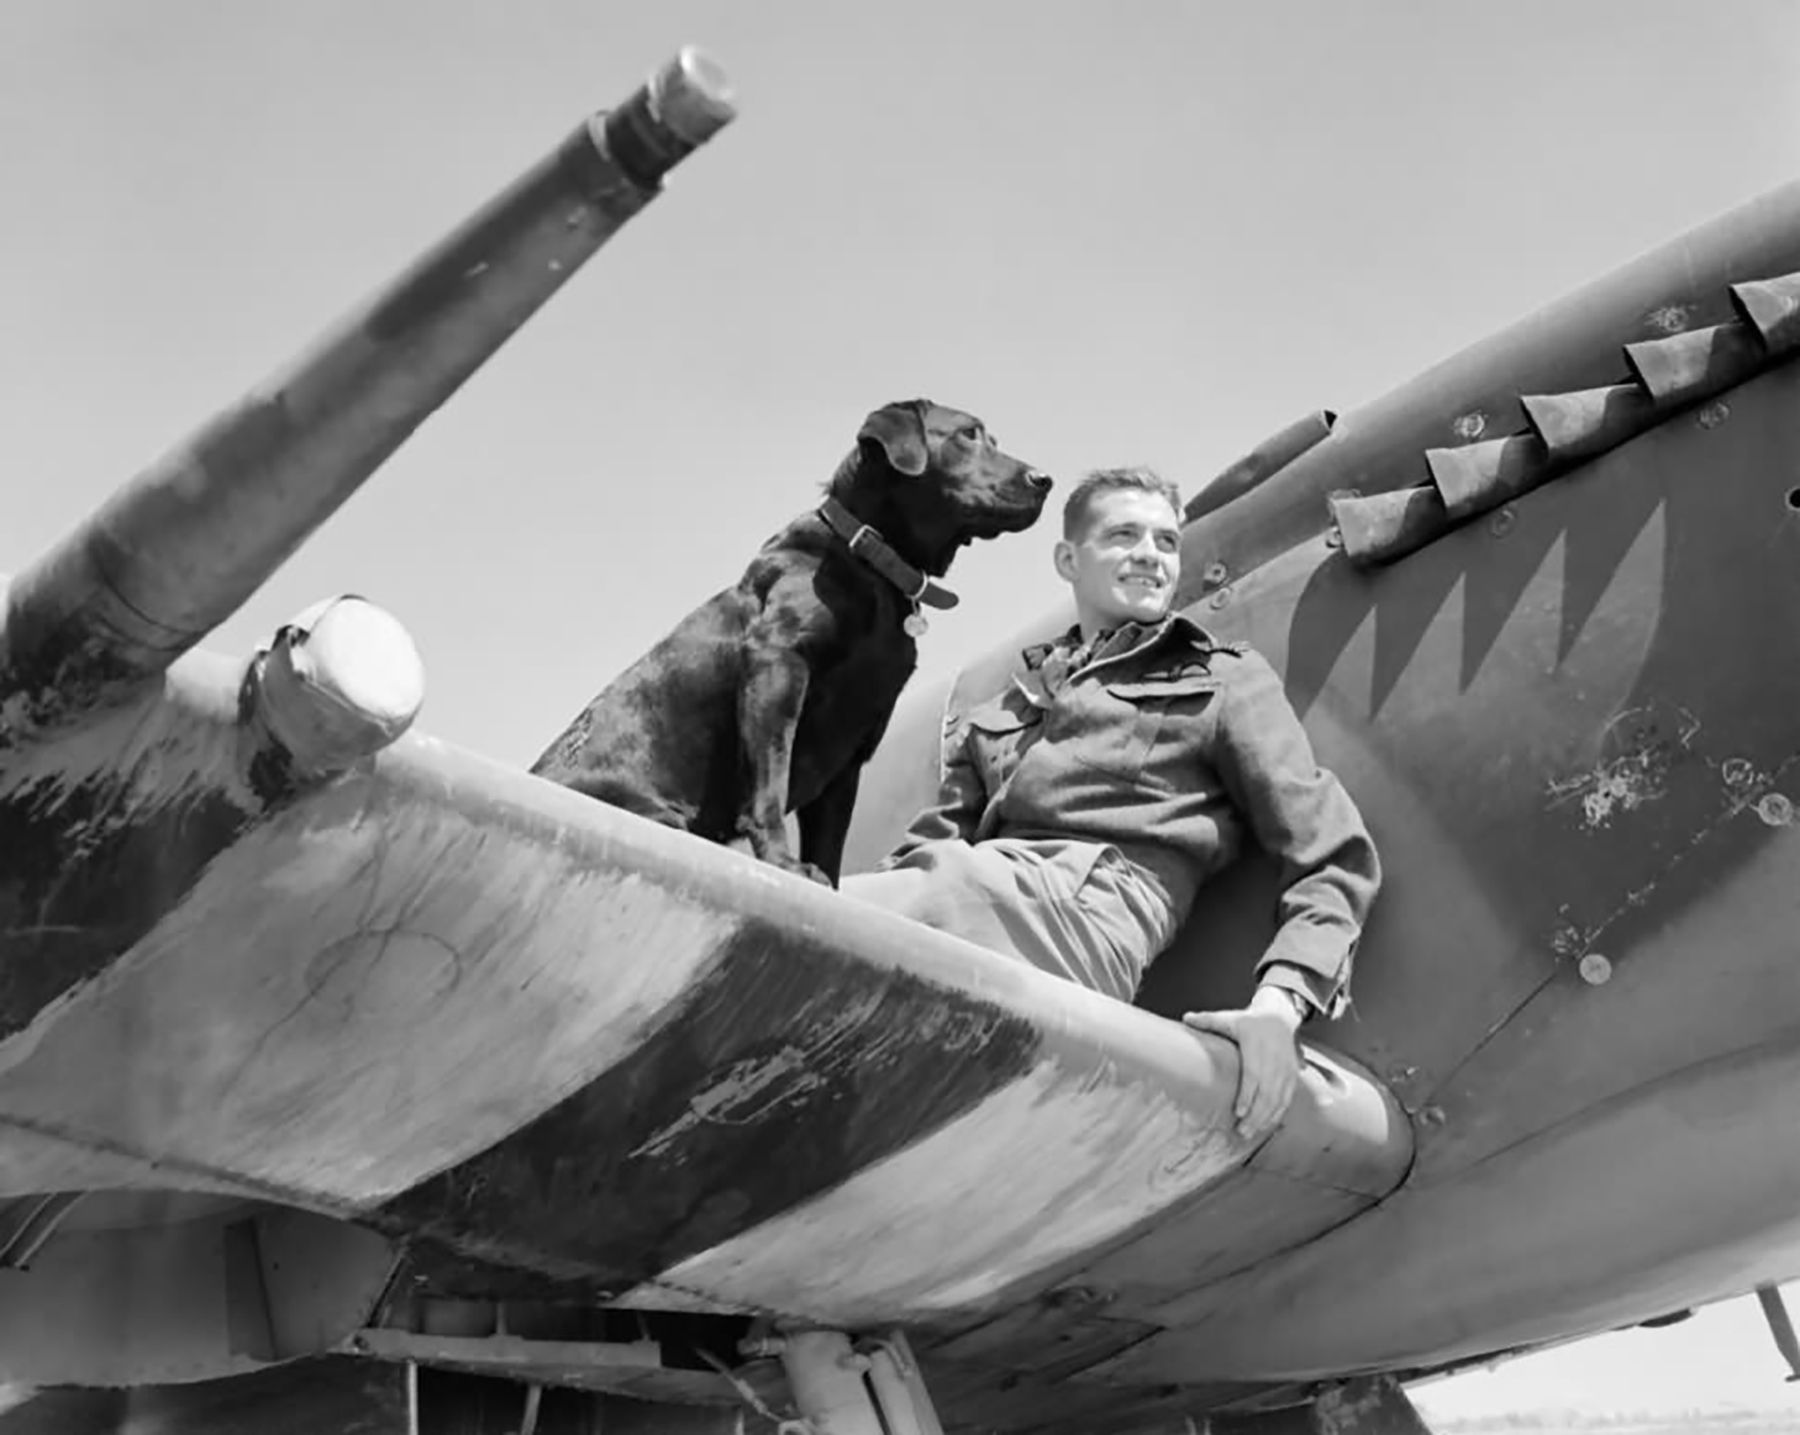 Aircrew RAF Ace JE Johnnie Johnson in his Spitfire MkIX RAF 144 (Canadian) Wing Bazenville Normandy 01